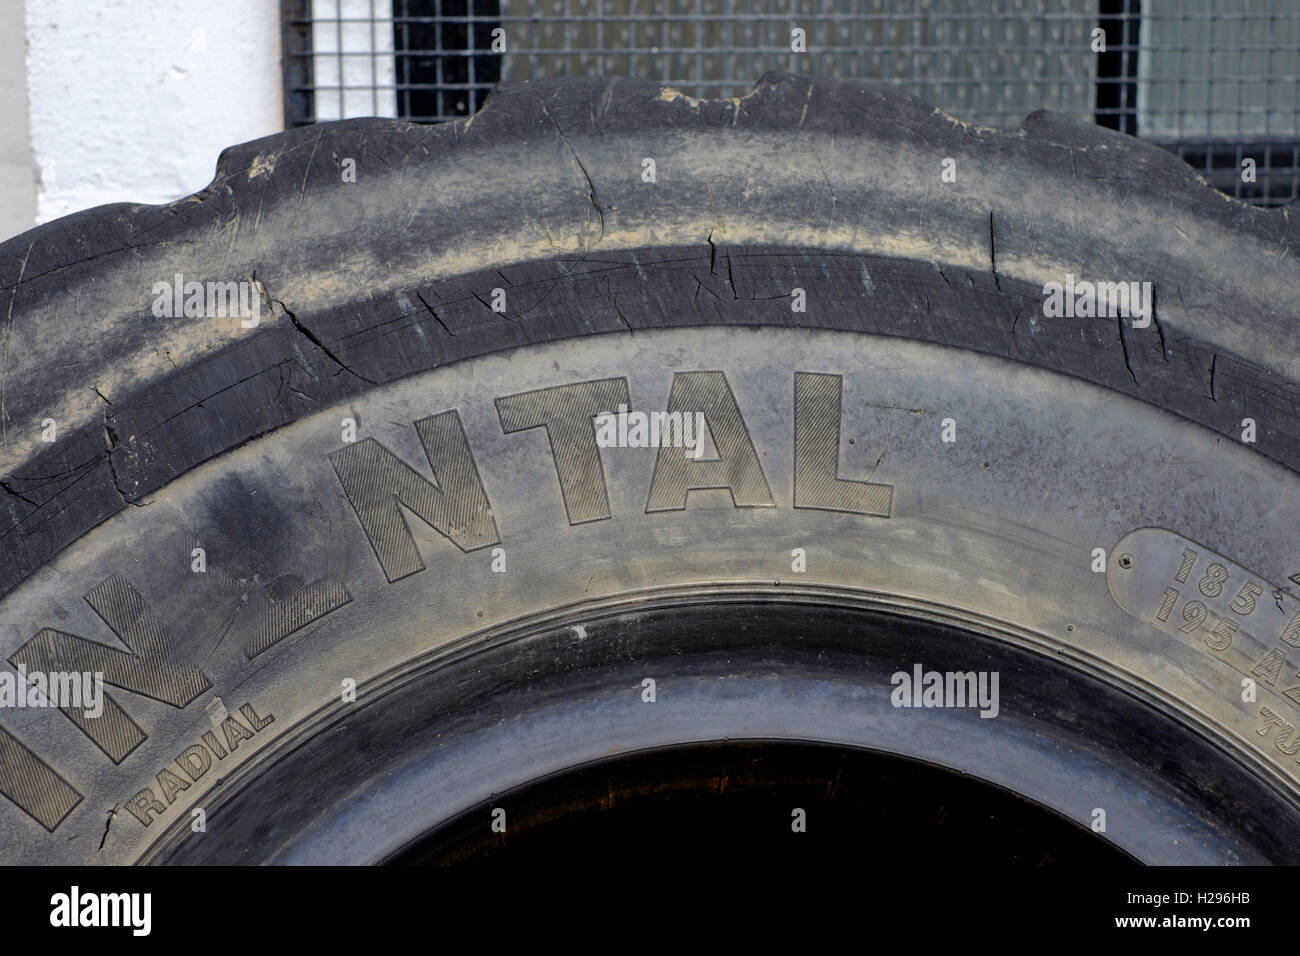 large worn out industrial sized commercial tyres dumped in a yard uk - Stock Image